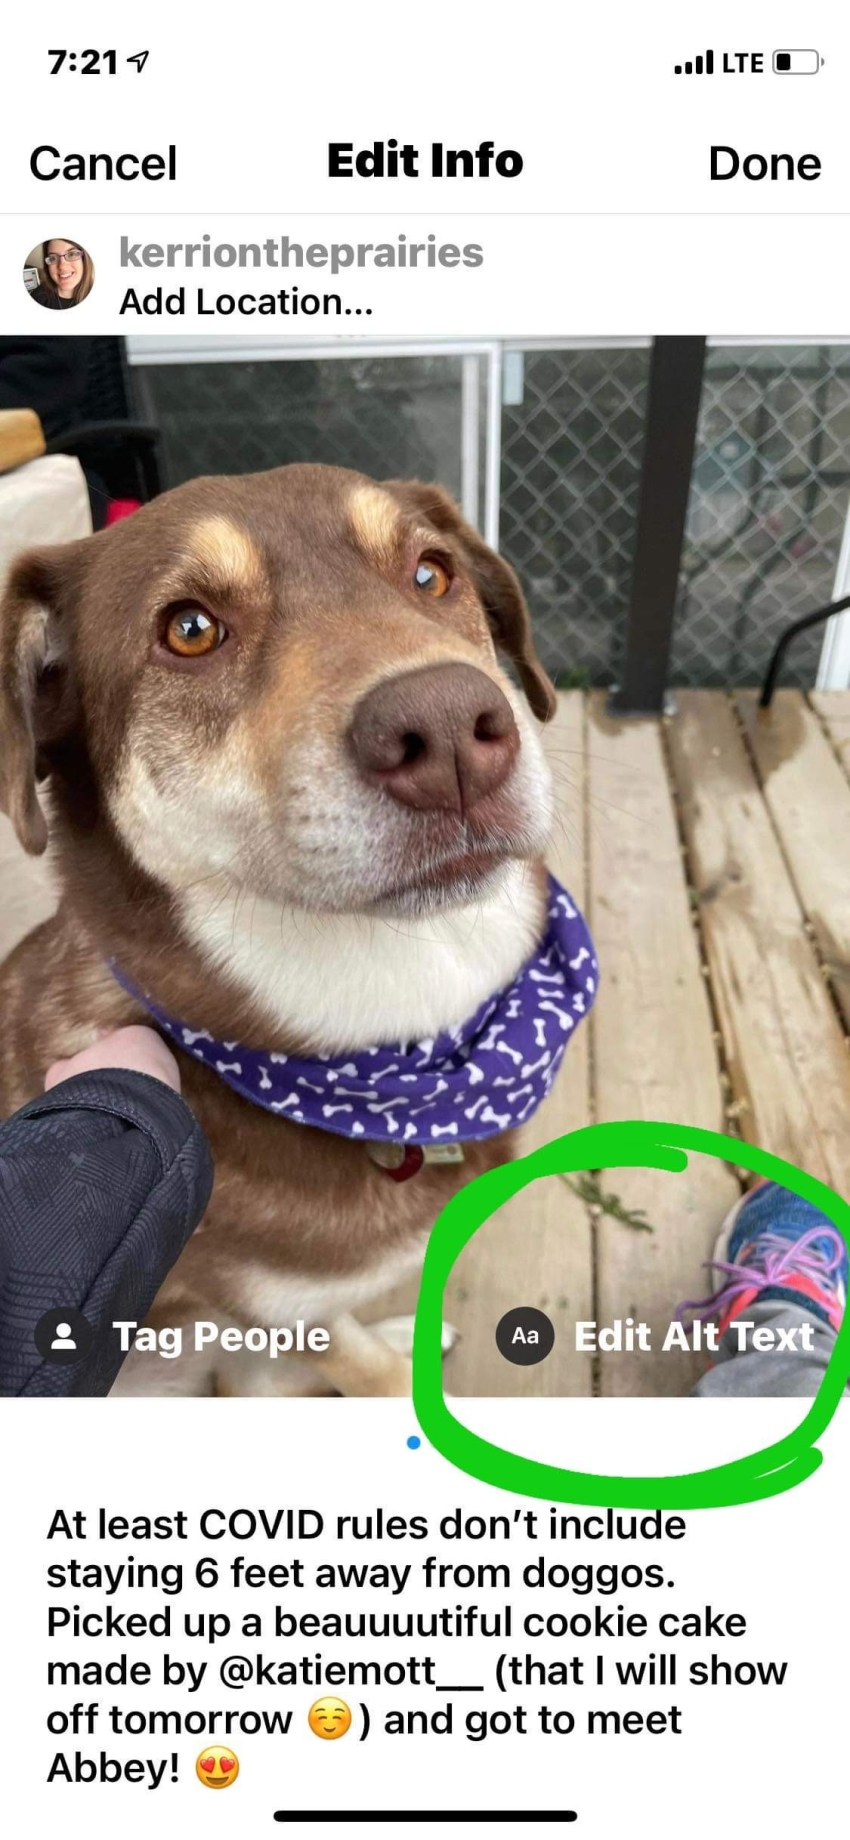 Image of my friend's dog Abbey who is medium-sized and brown and white, she is gazing toward the camera. Anyways, the whole point here is that I am telling the sighted peoplewhere the Edit alt text button is, it's circled in green.